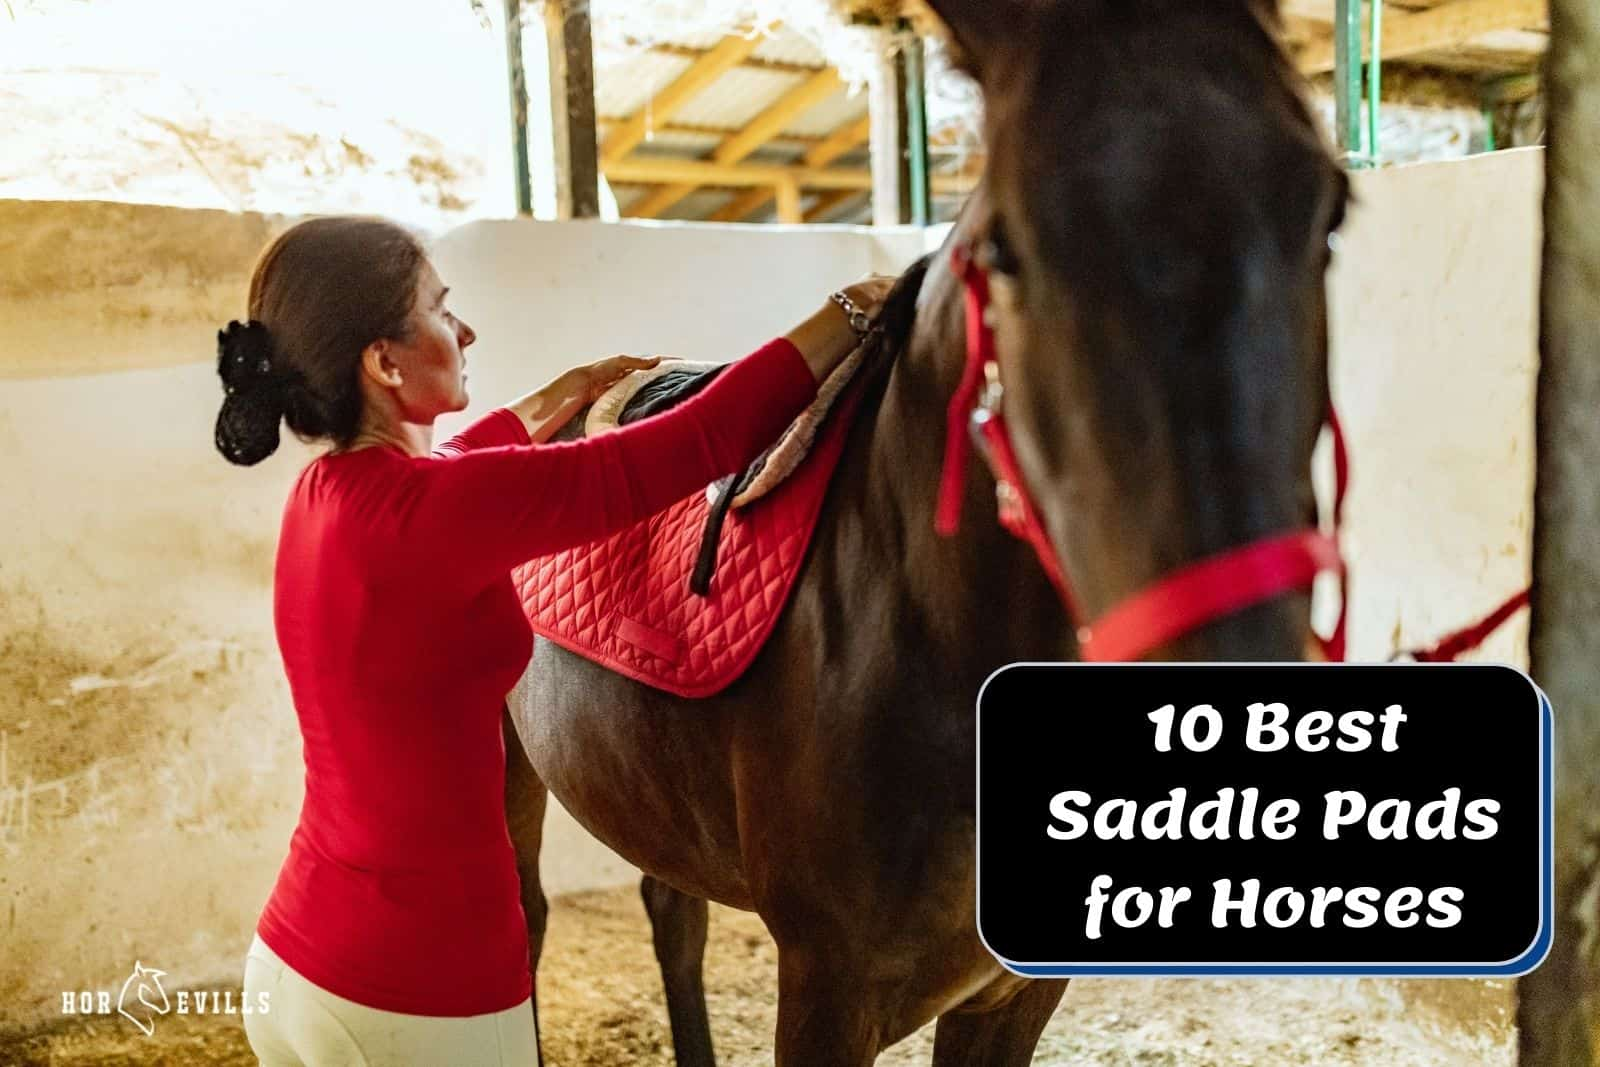 lady fitting the best saddle pads for horses to her stallion